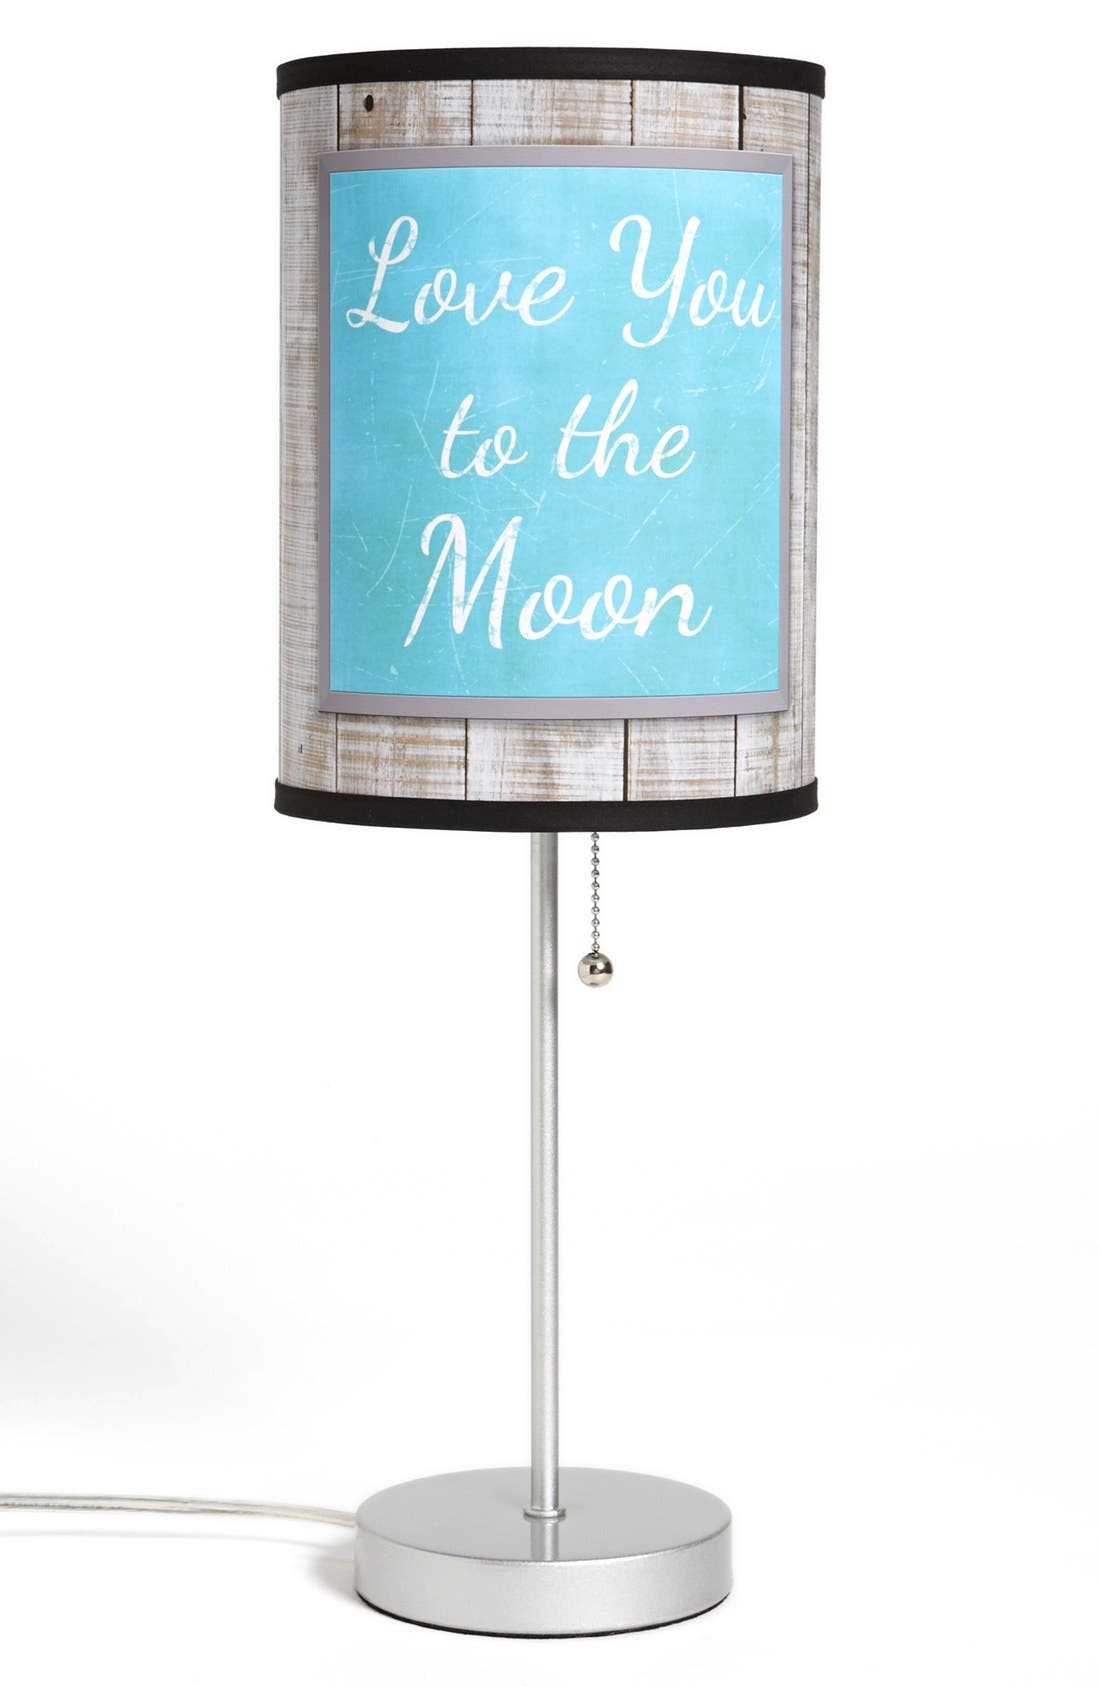 Alternate Image 1 Selected - LAMP-IN-A-BOX 'Love You to the Moon' Table Lamp